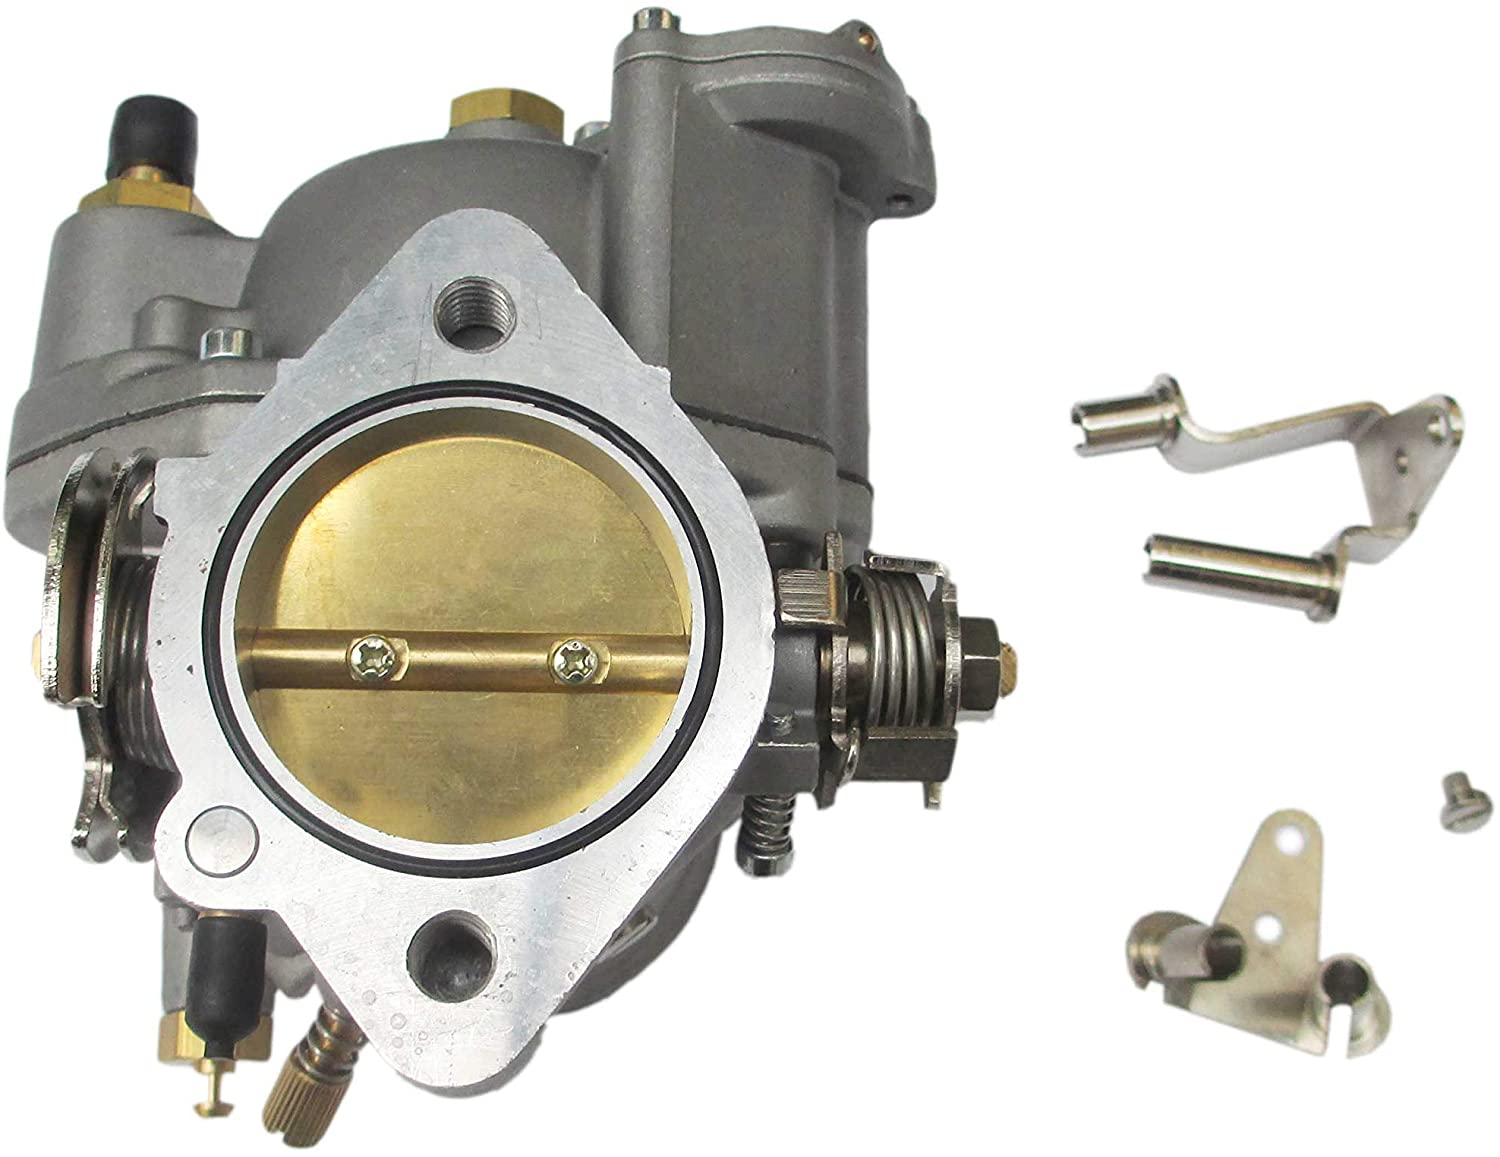 Carburetor for Super E 11-0420 Harley Big Twin & Sportster Shorty Carb